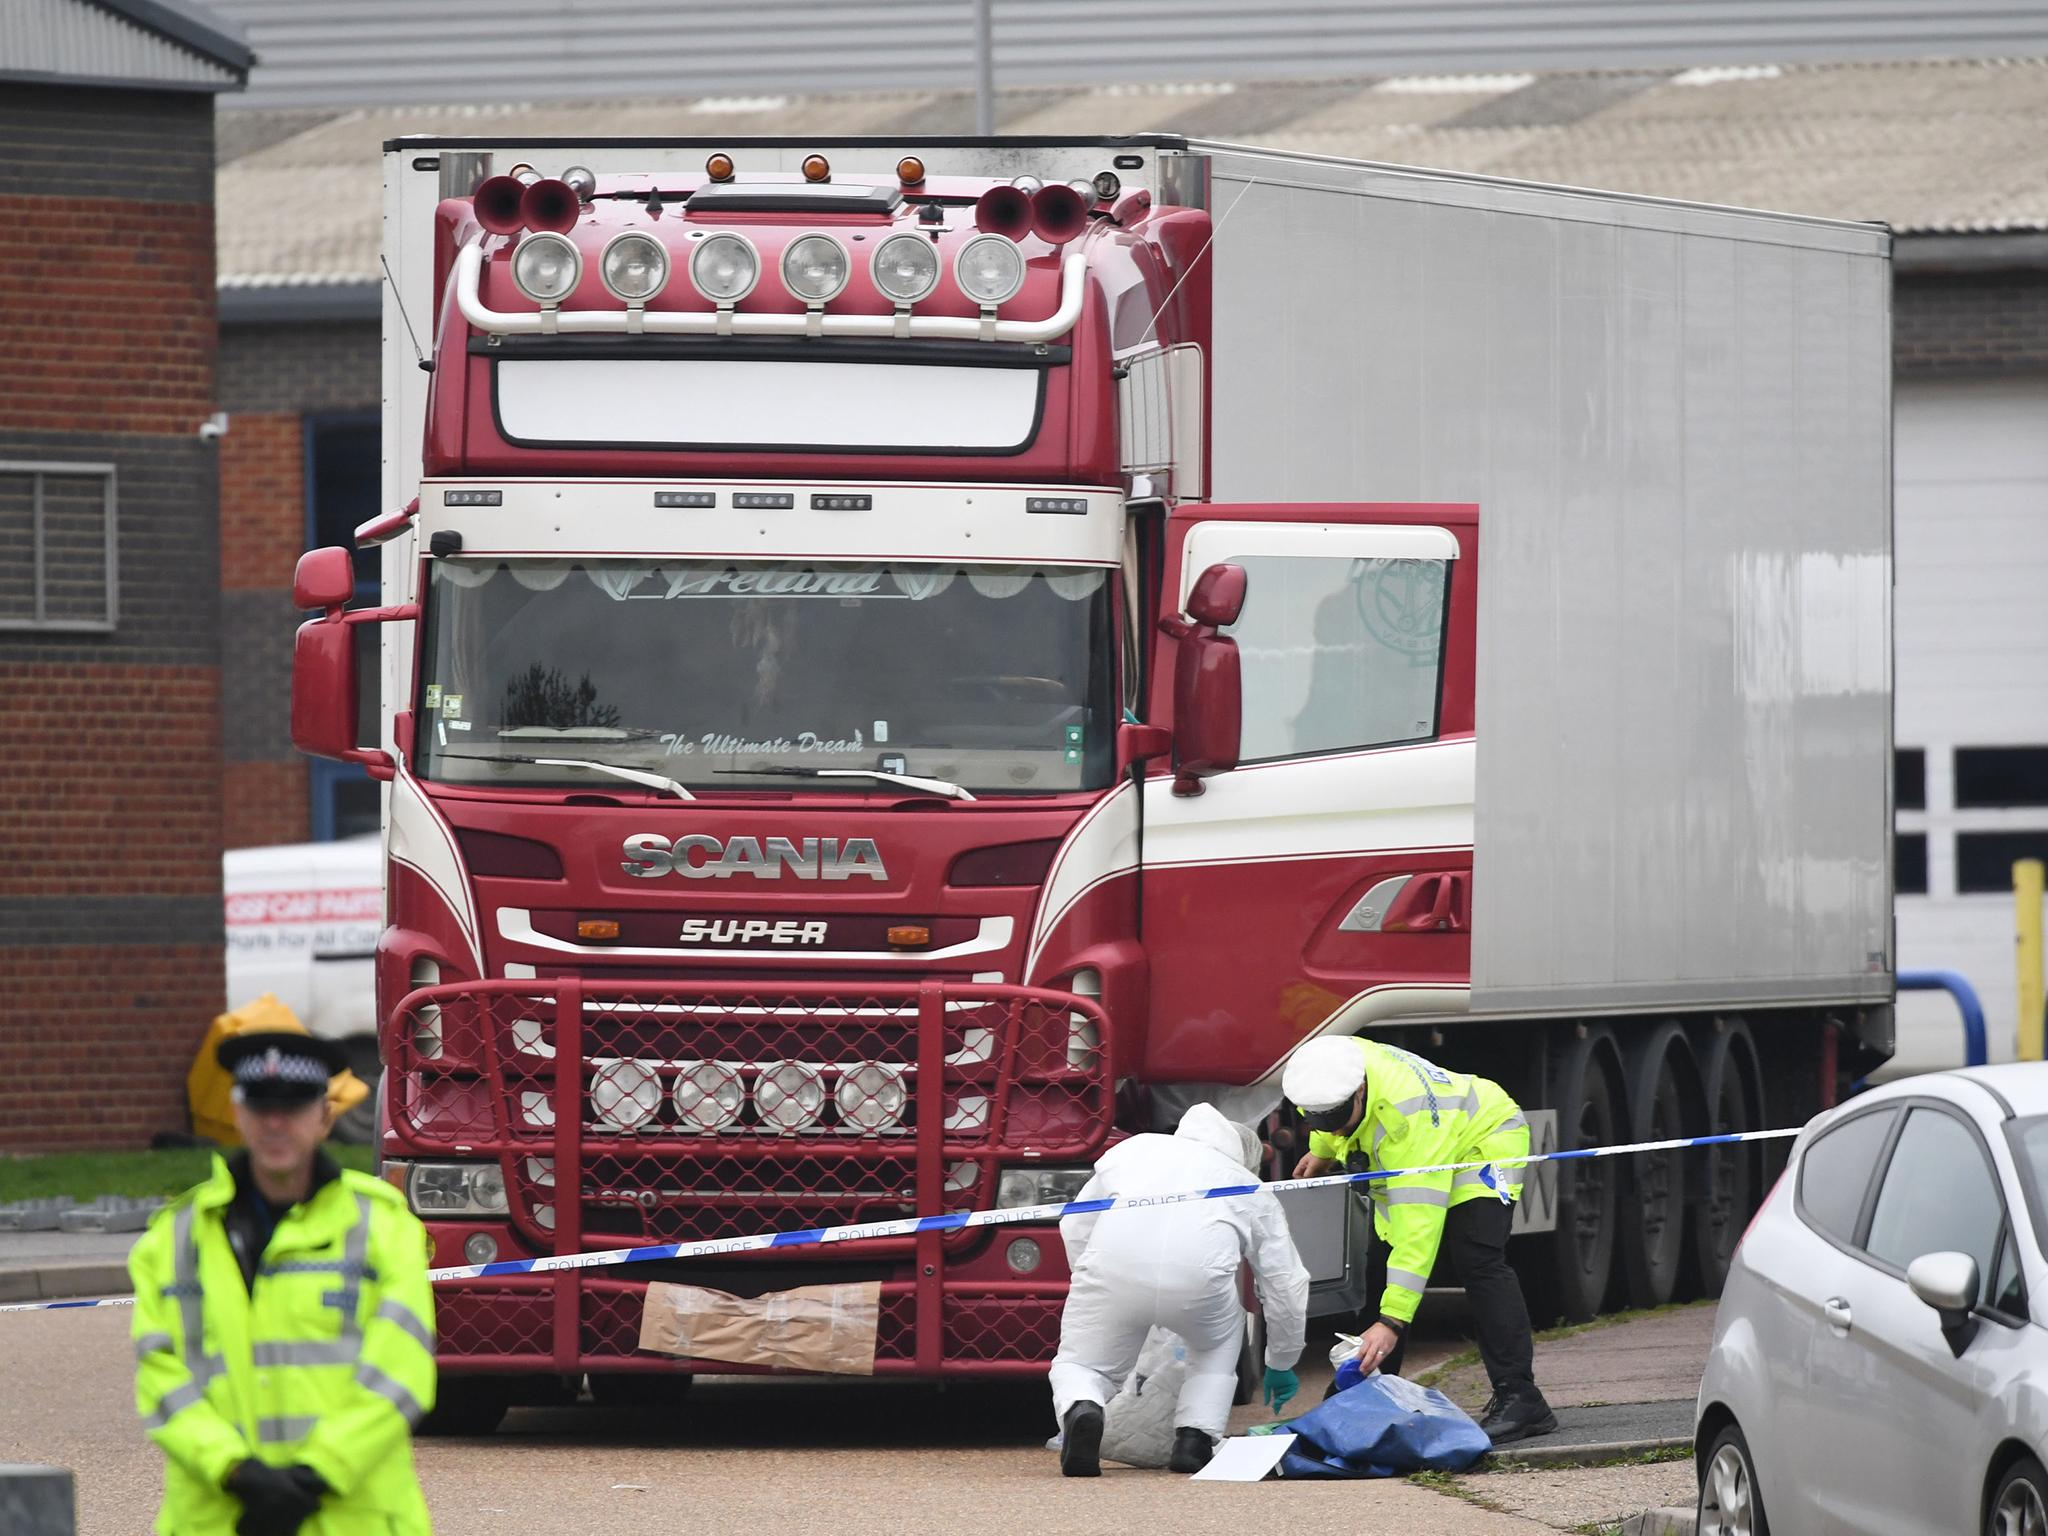 One year on from the Essex lorry deaths, the only way forward is to dismantle the 'hostile environment'